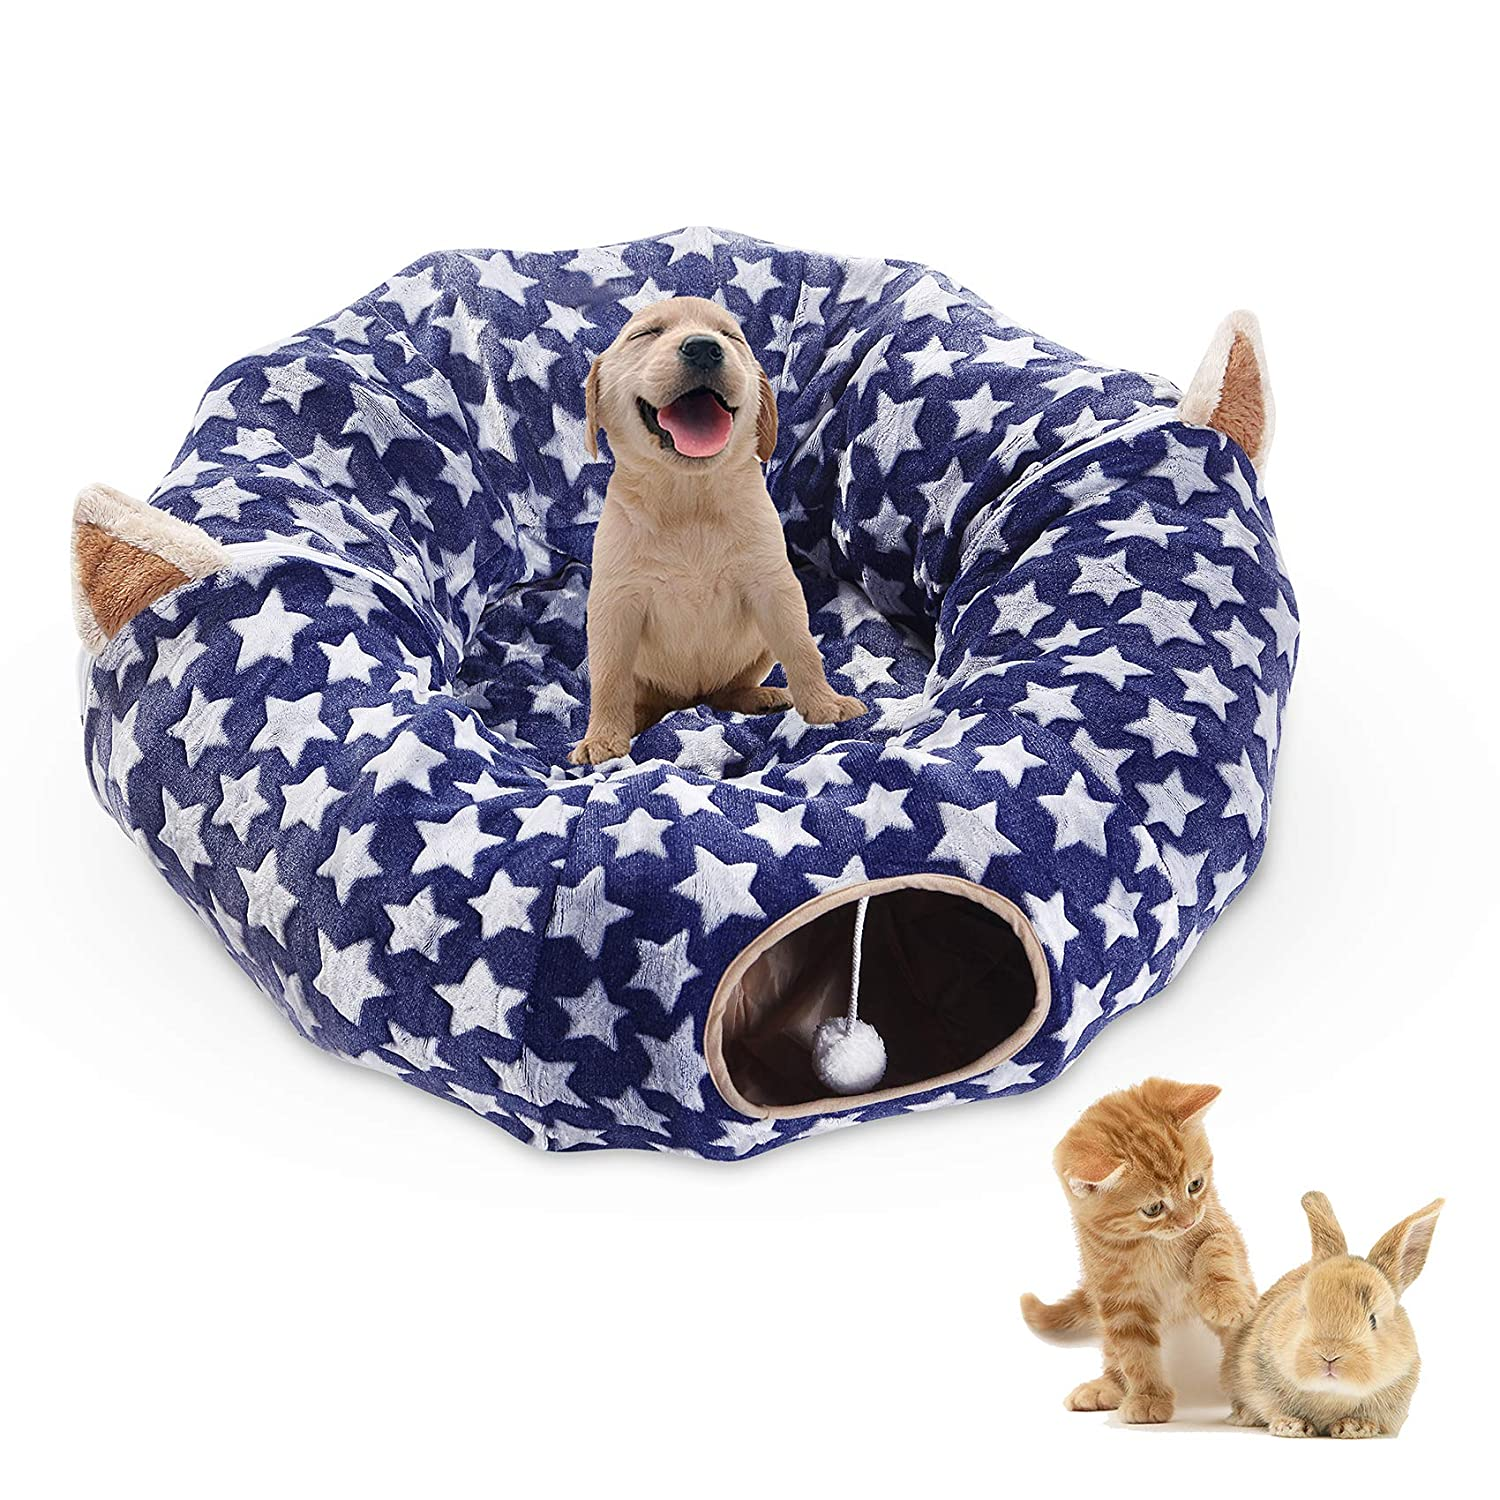 Navy Large Cat Dog Tunnel Bed with Washable Cushion Big Tube Toys Plush 6 FT Diameter Longer Crinkle Collapsible 3 Way,Gift for Small Medium Large Kitten Small Puppy Outdoor Navy bluee